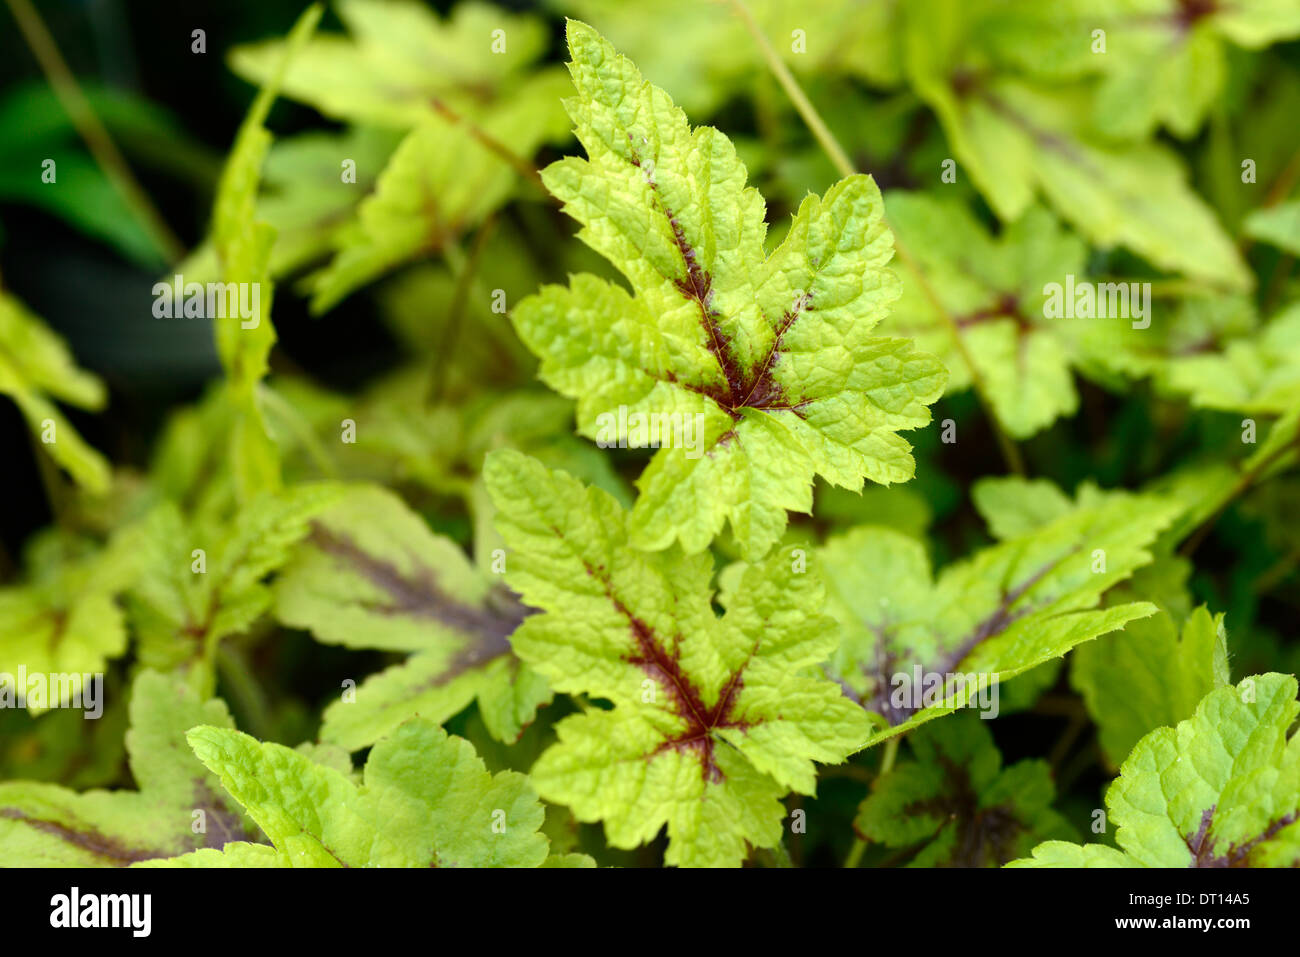 How to plant ground cover for shady areas - Stock Photo Tiarella Braveheart Foliage Leaves Ground Cover Shade Shady Shaded Wood Woodland Garden Plant Flower Foamflower Perennial